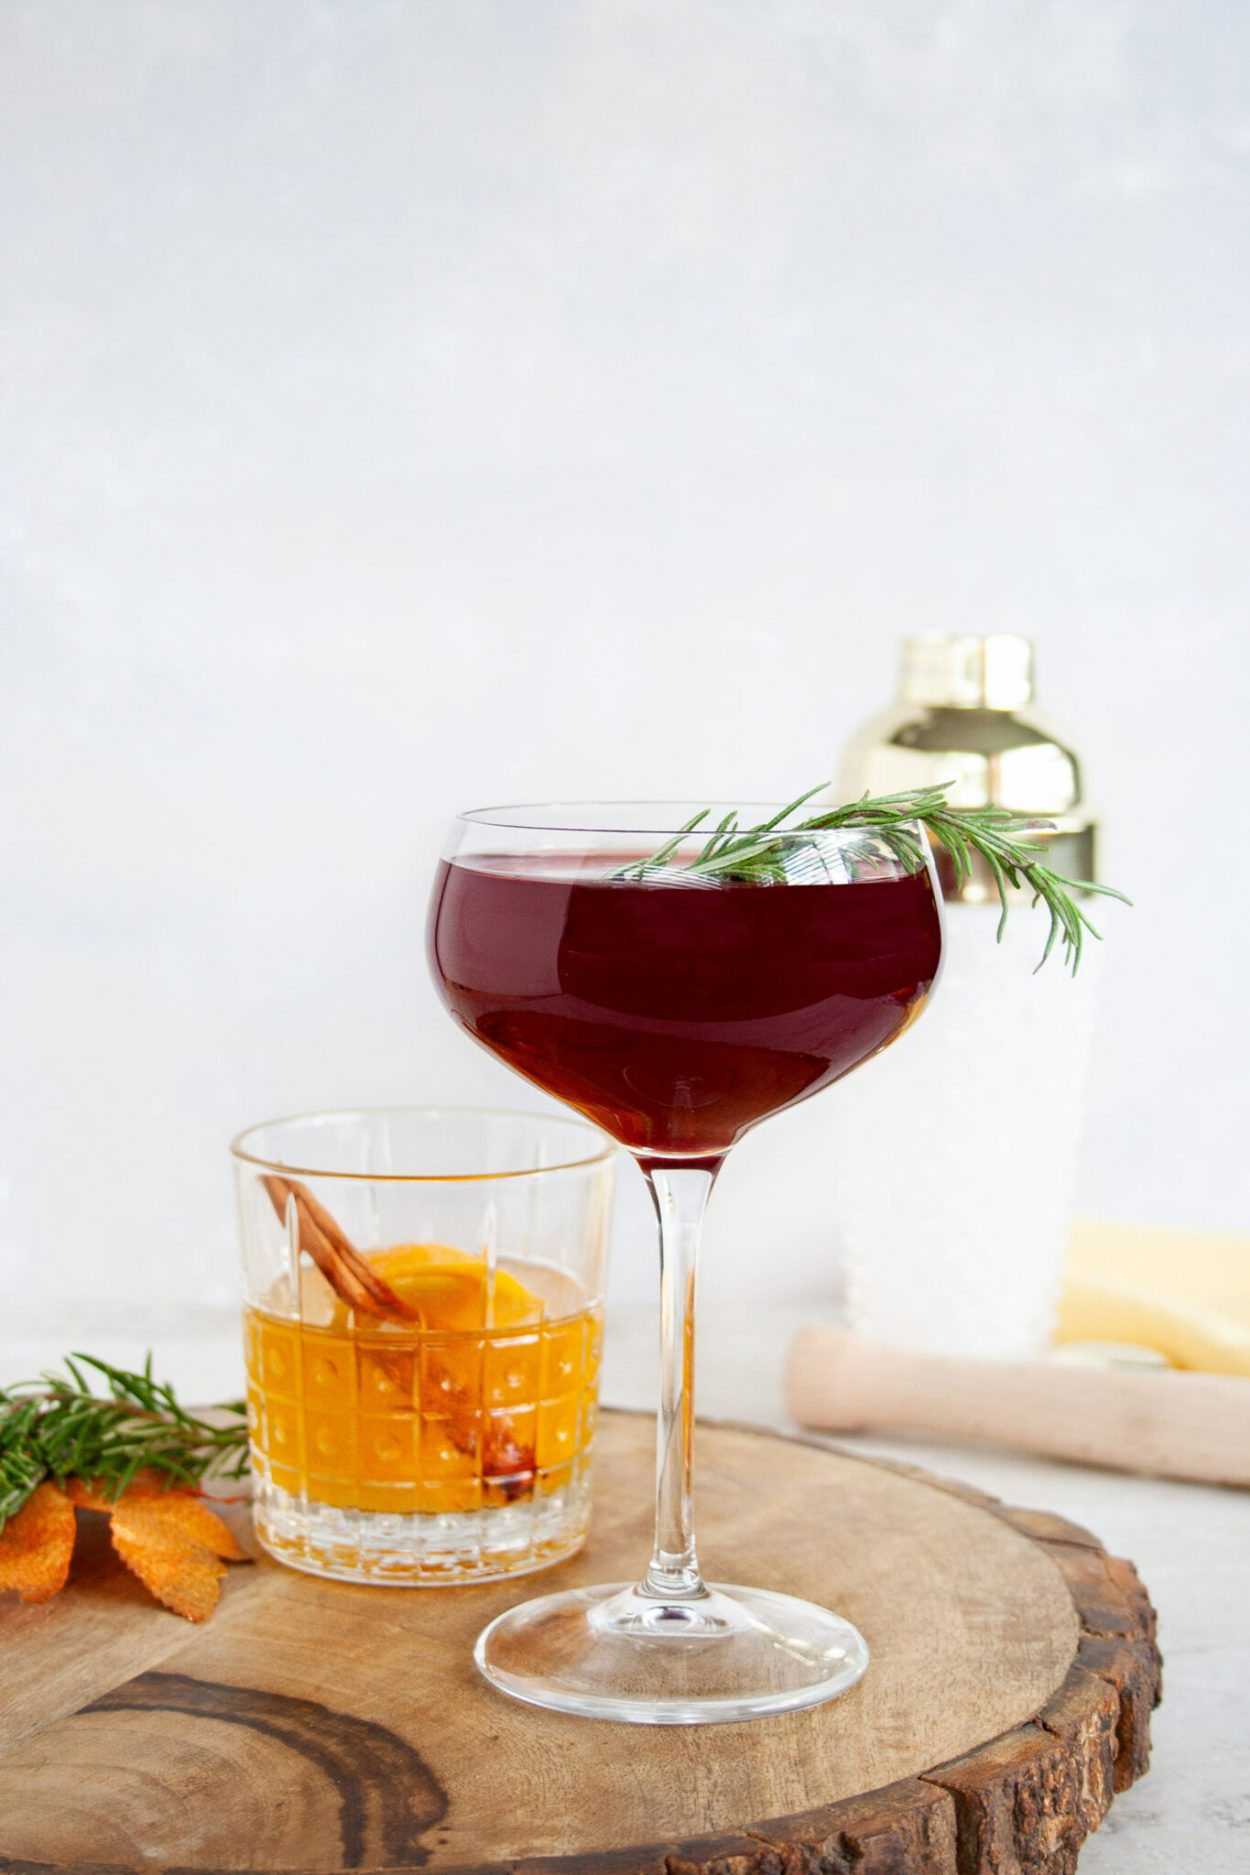 This pomegranate cocktail has notes of muddled rosemary and elderflower. It's herbal with tart notes which makes it a wonderful dry gin cocktail served in an oversized coupe glass, the Bormioli Rocco Spazio glasses. #ElleTalk #sponsored #fall #cocktail #coupe #gin #drygin